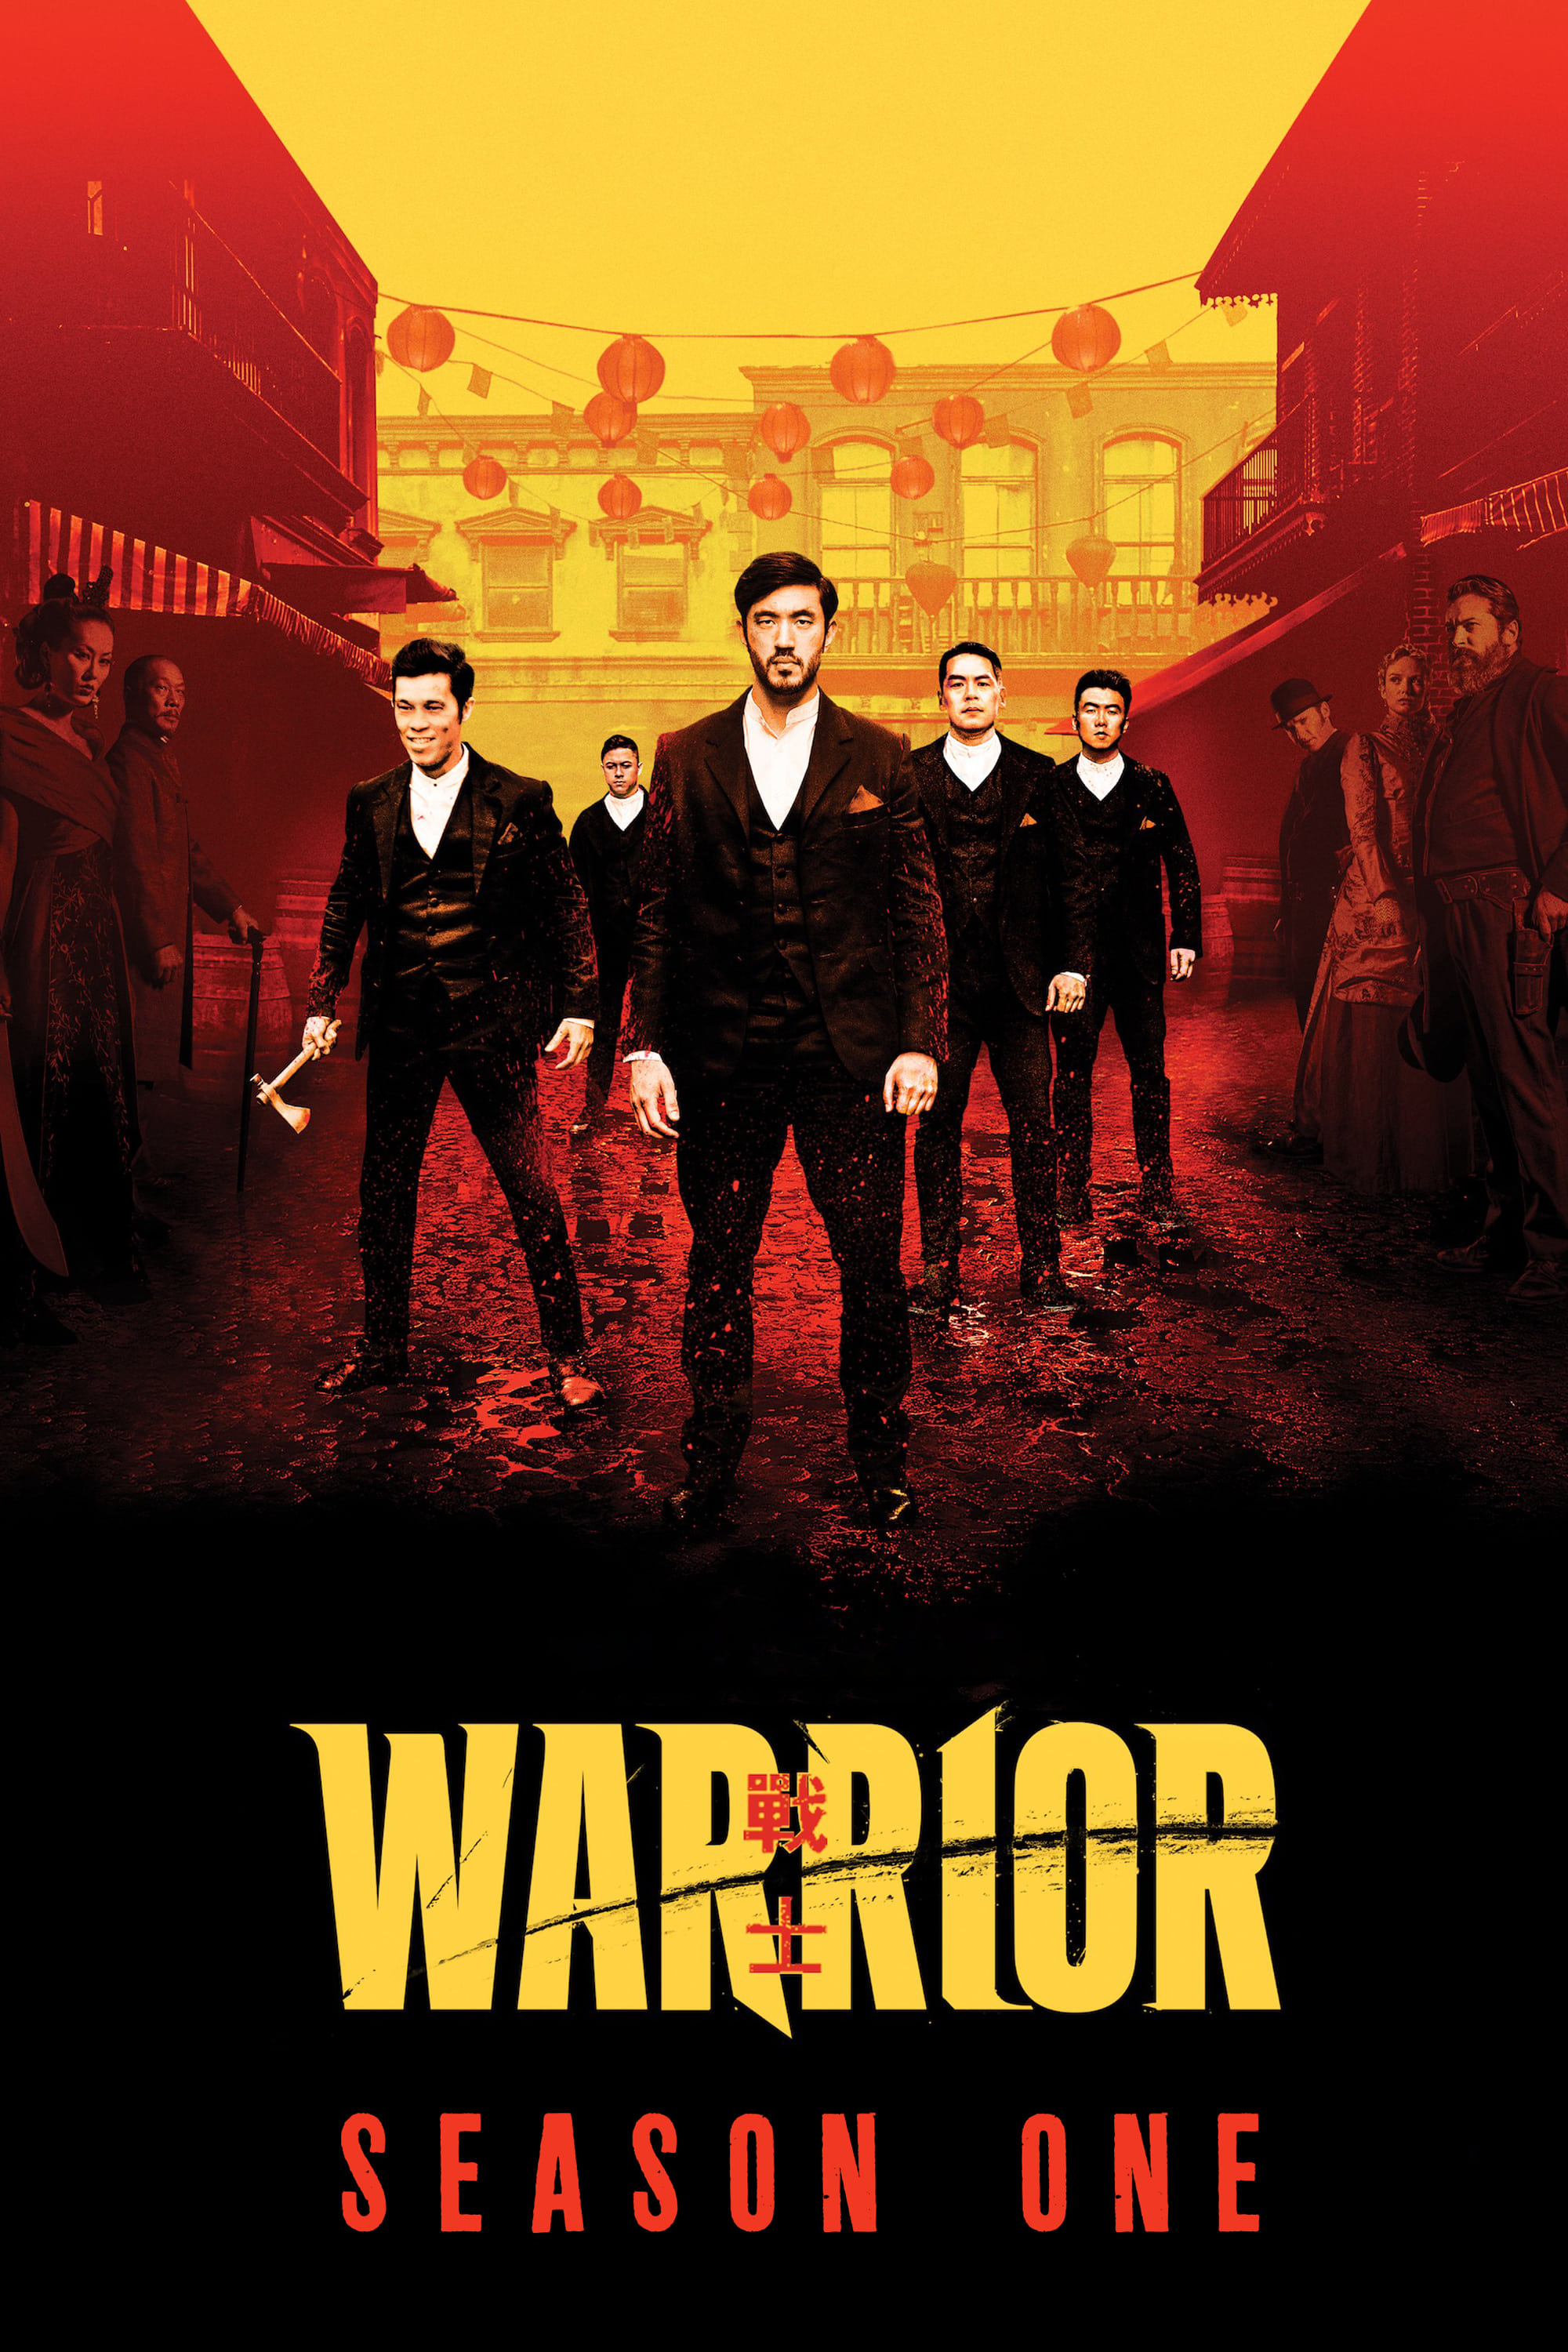 Warrior Season 1